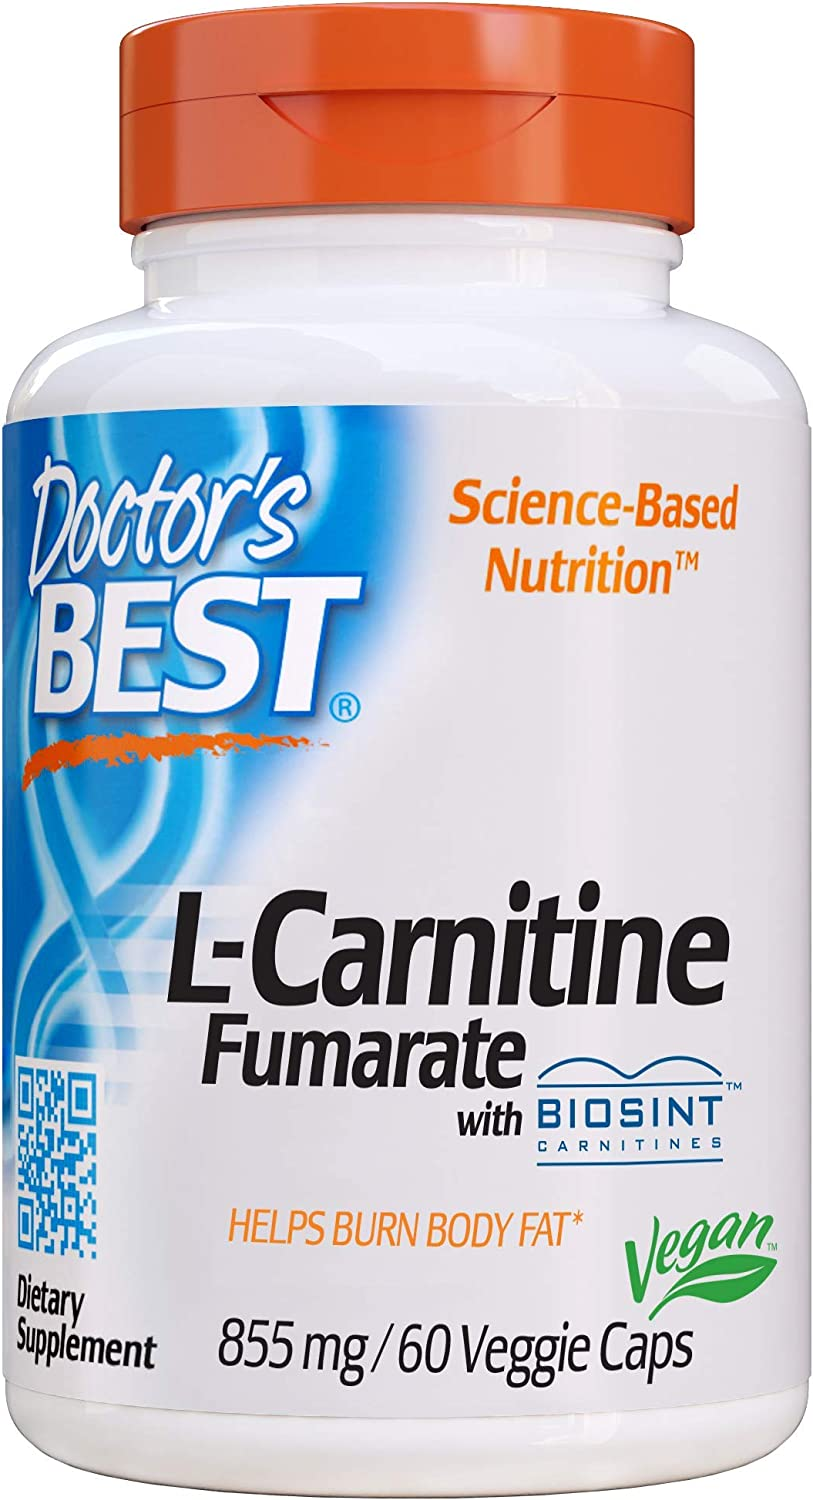 Doctor's Best L-Carnitine Fumarate, Non-GMO, Vegan, Gluten Free, Heart Health, 855 mg, 60 Count Veggie Caps: Health & Personal Care